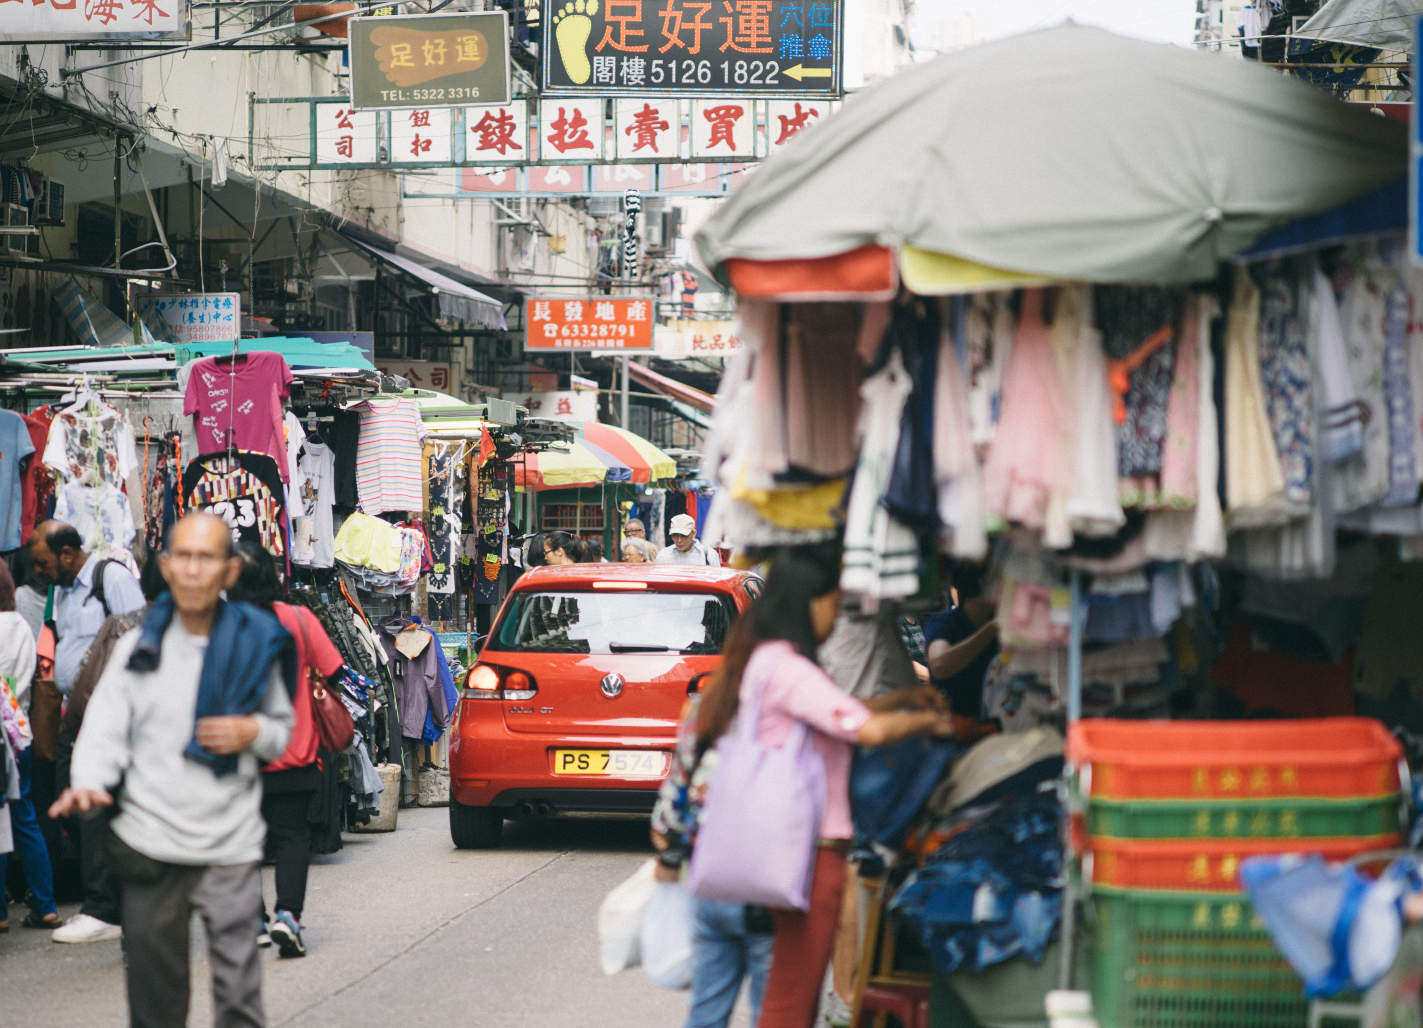 Where to find affordable mental health care services in Hong Kong